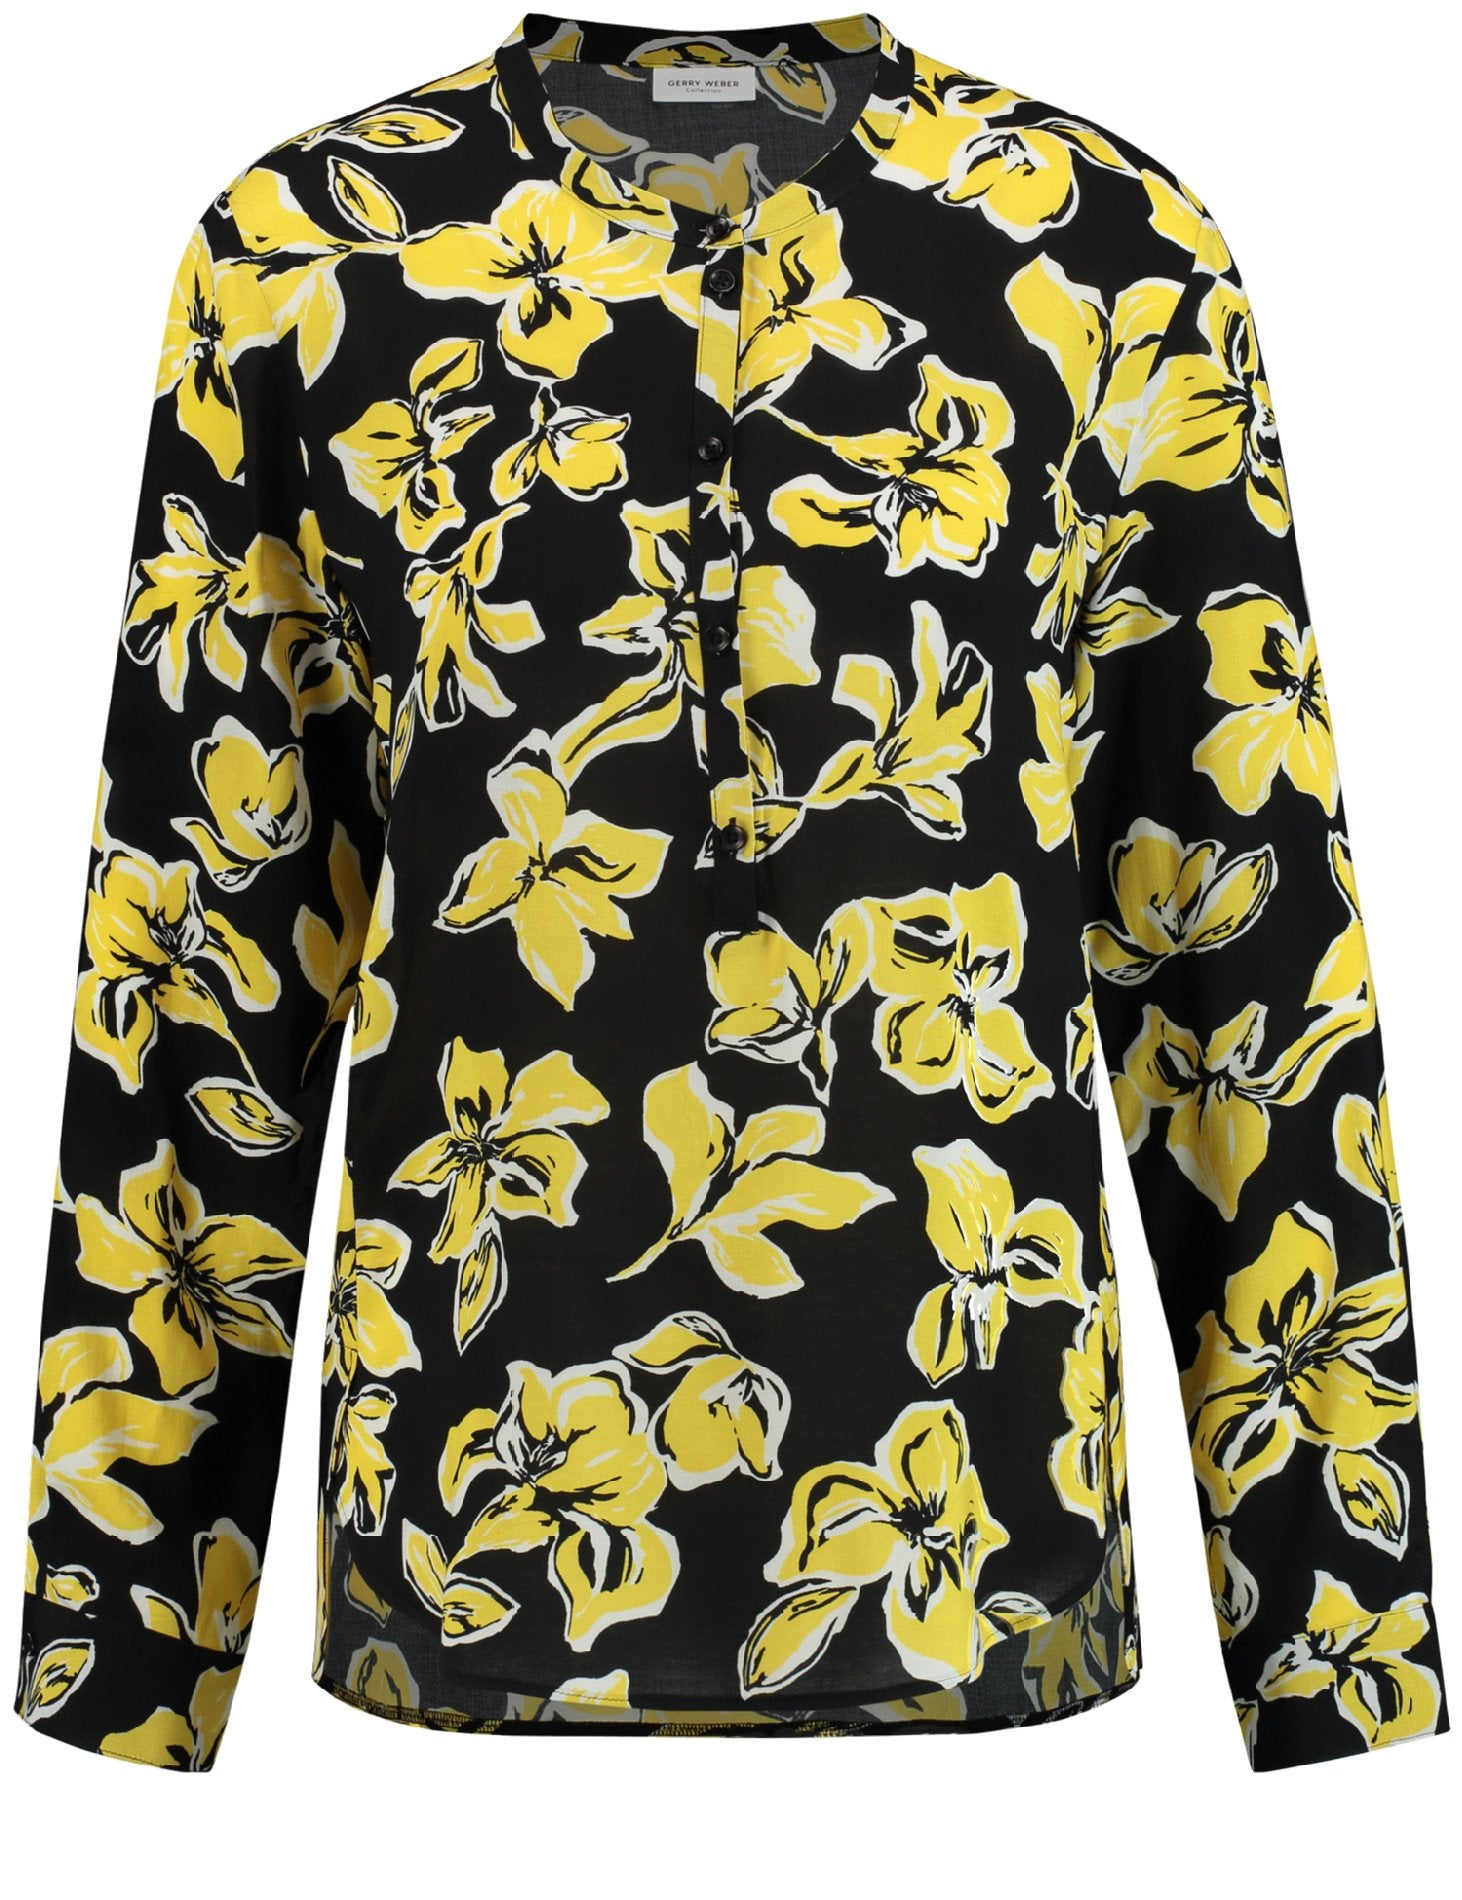 GERRY WEBER Floral print blouse on black ground